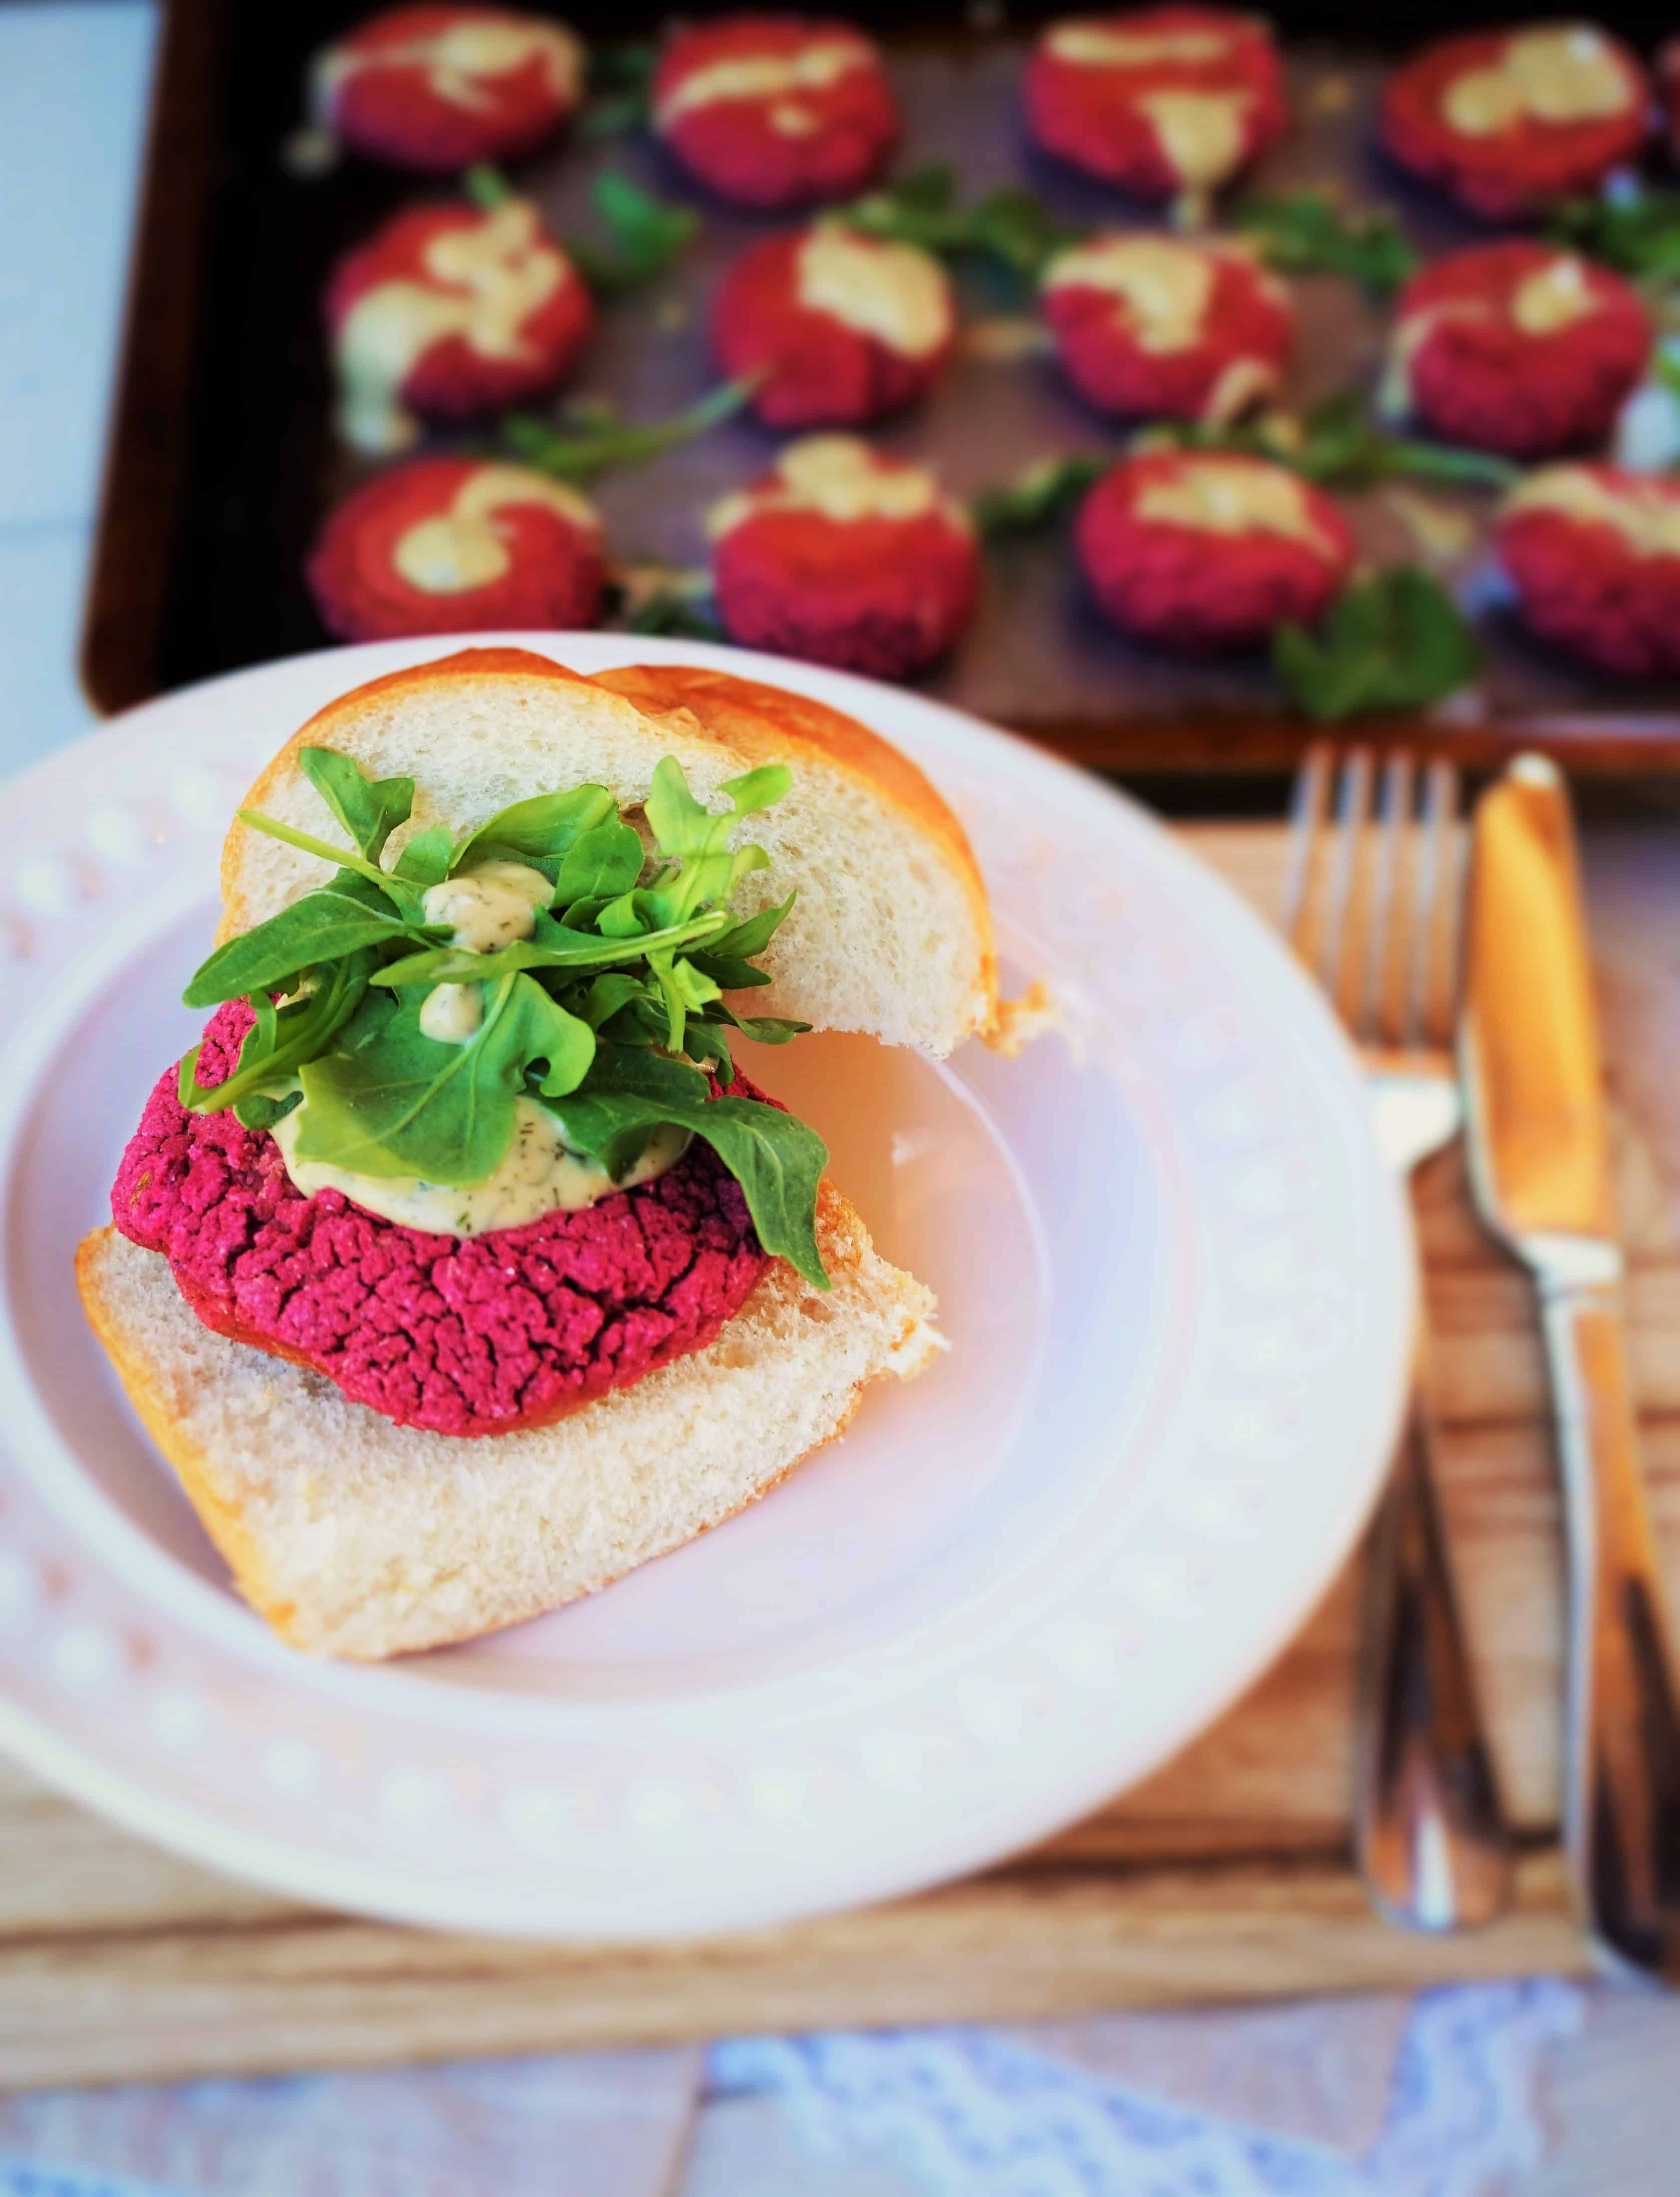 Beet Falafel Sliders - VG, GF - Shaw's Simple Swaps Perfect for a party appetizer or #meatlessmeal... Freezes well too!